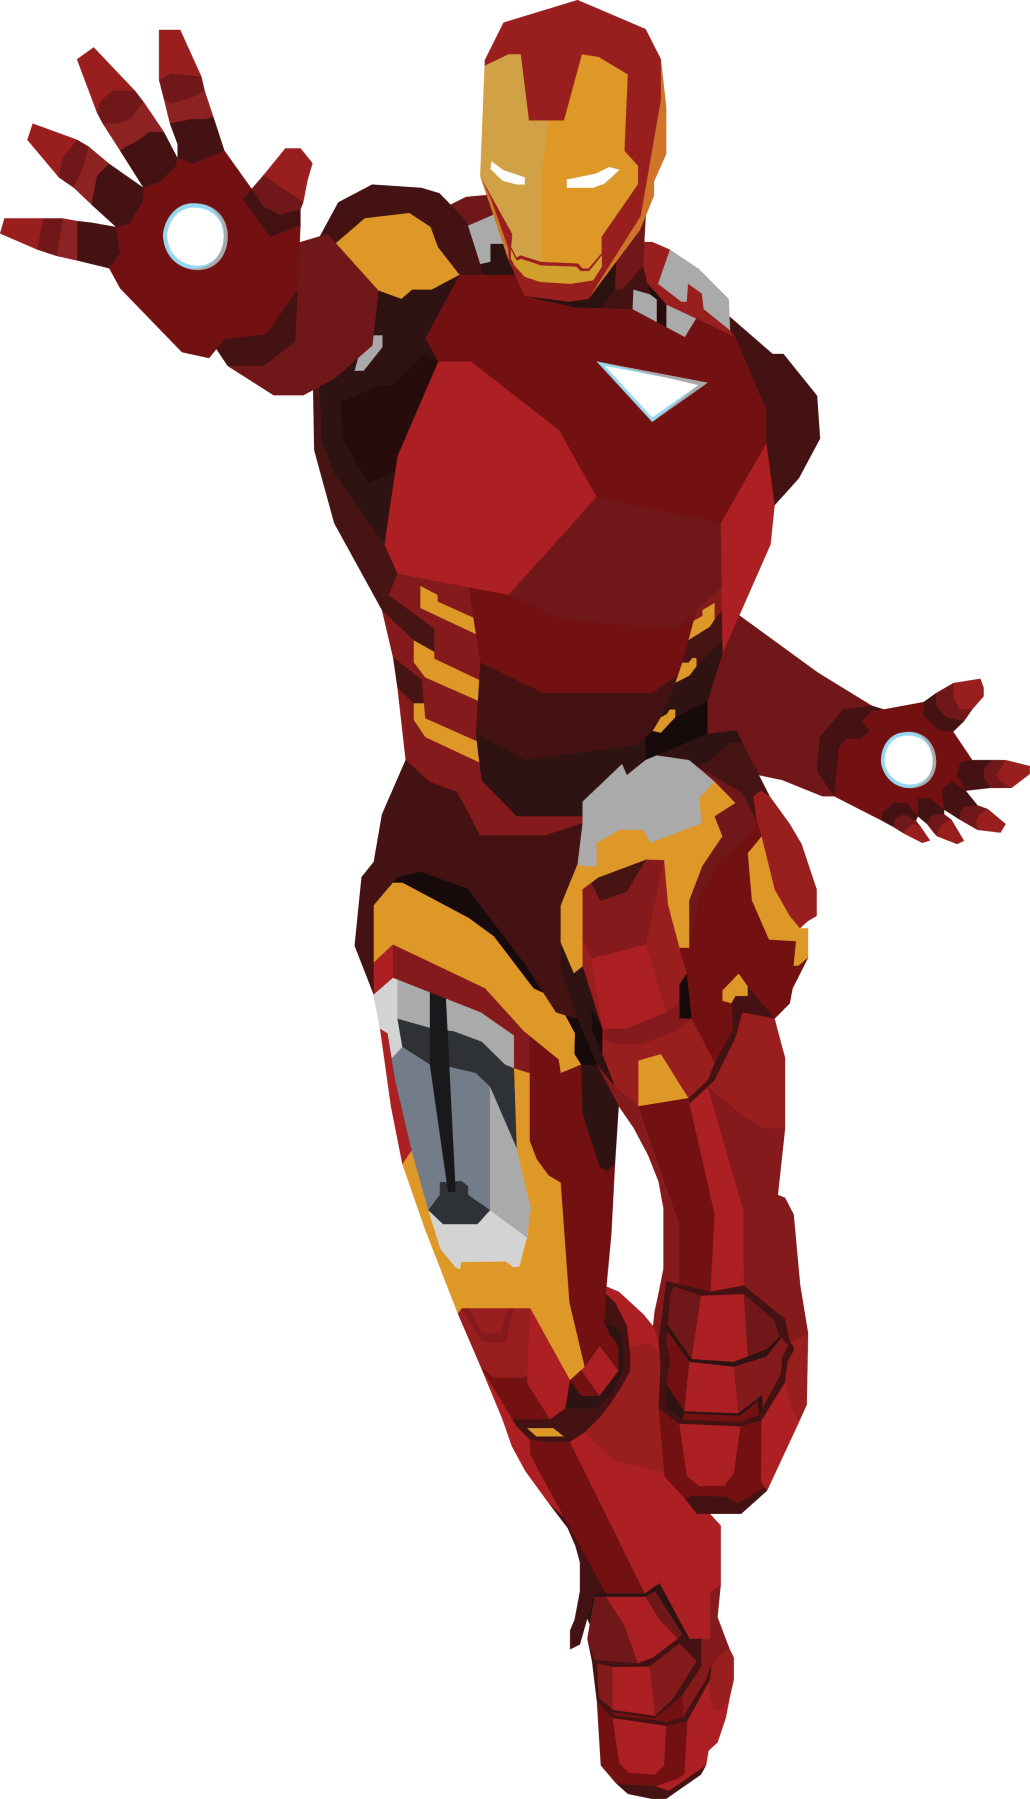 Iron Man Vector Design